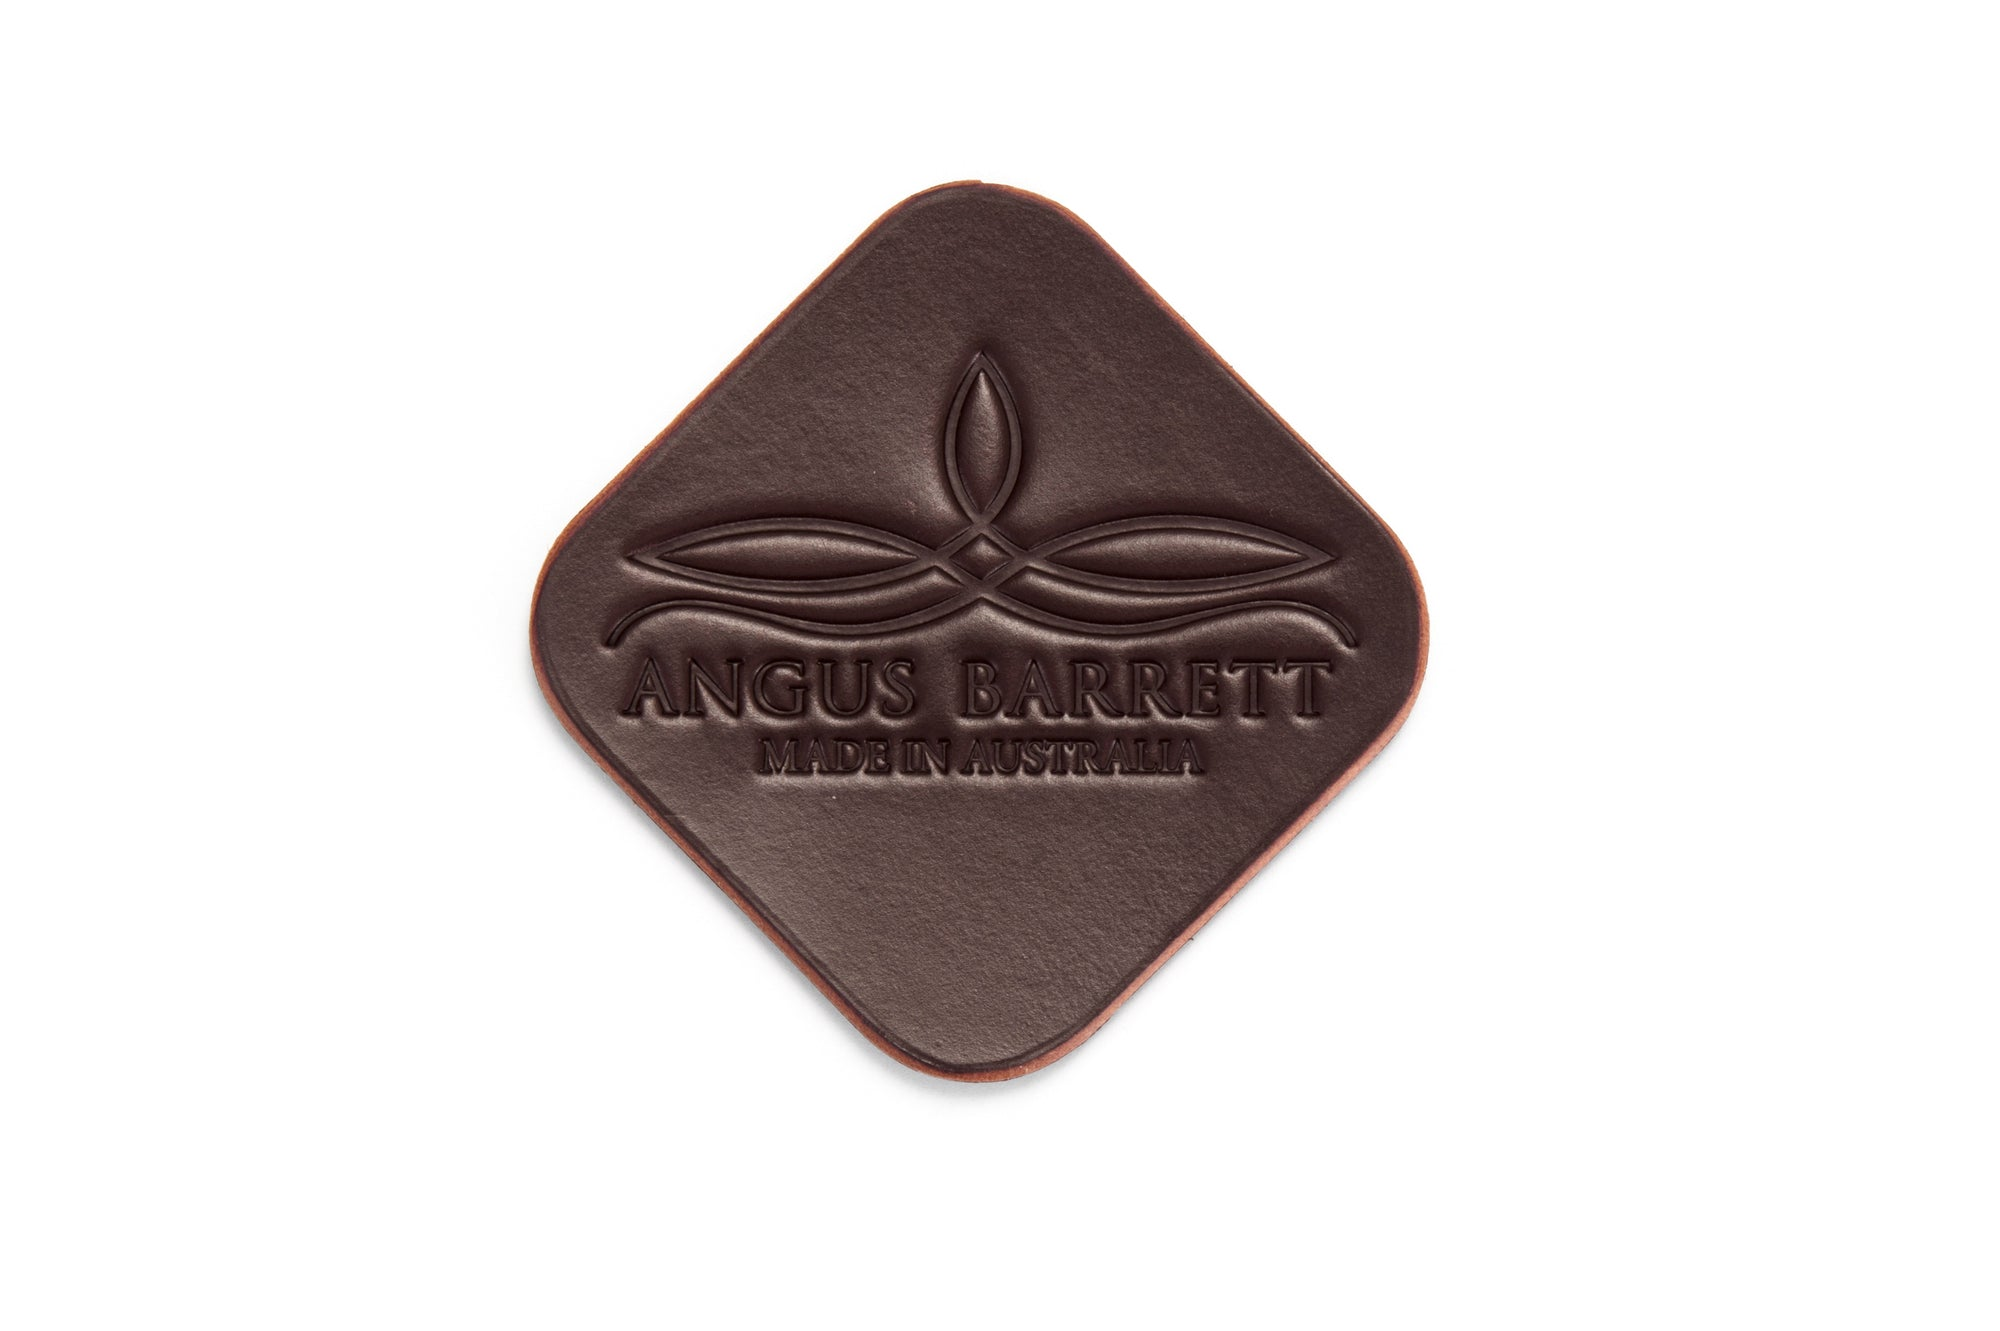 Angus Barrett Coaster with large logo